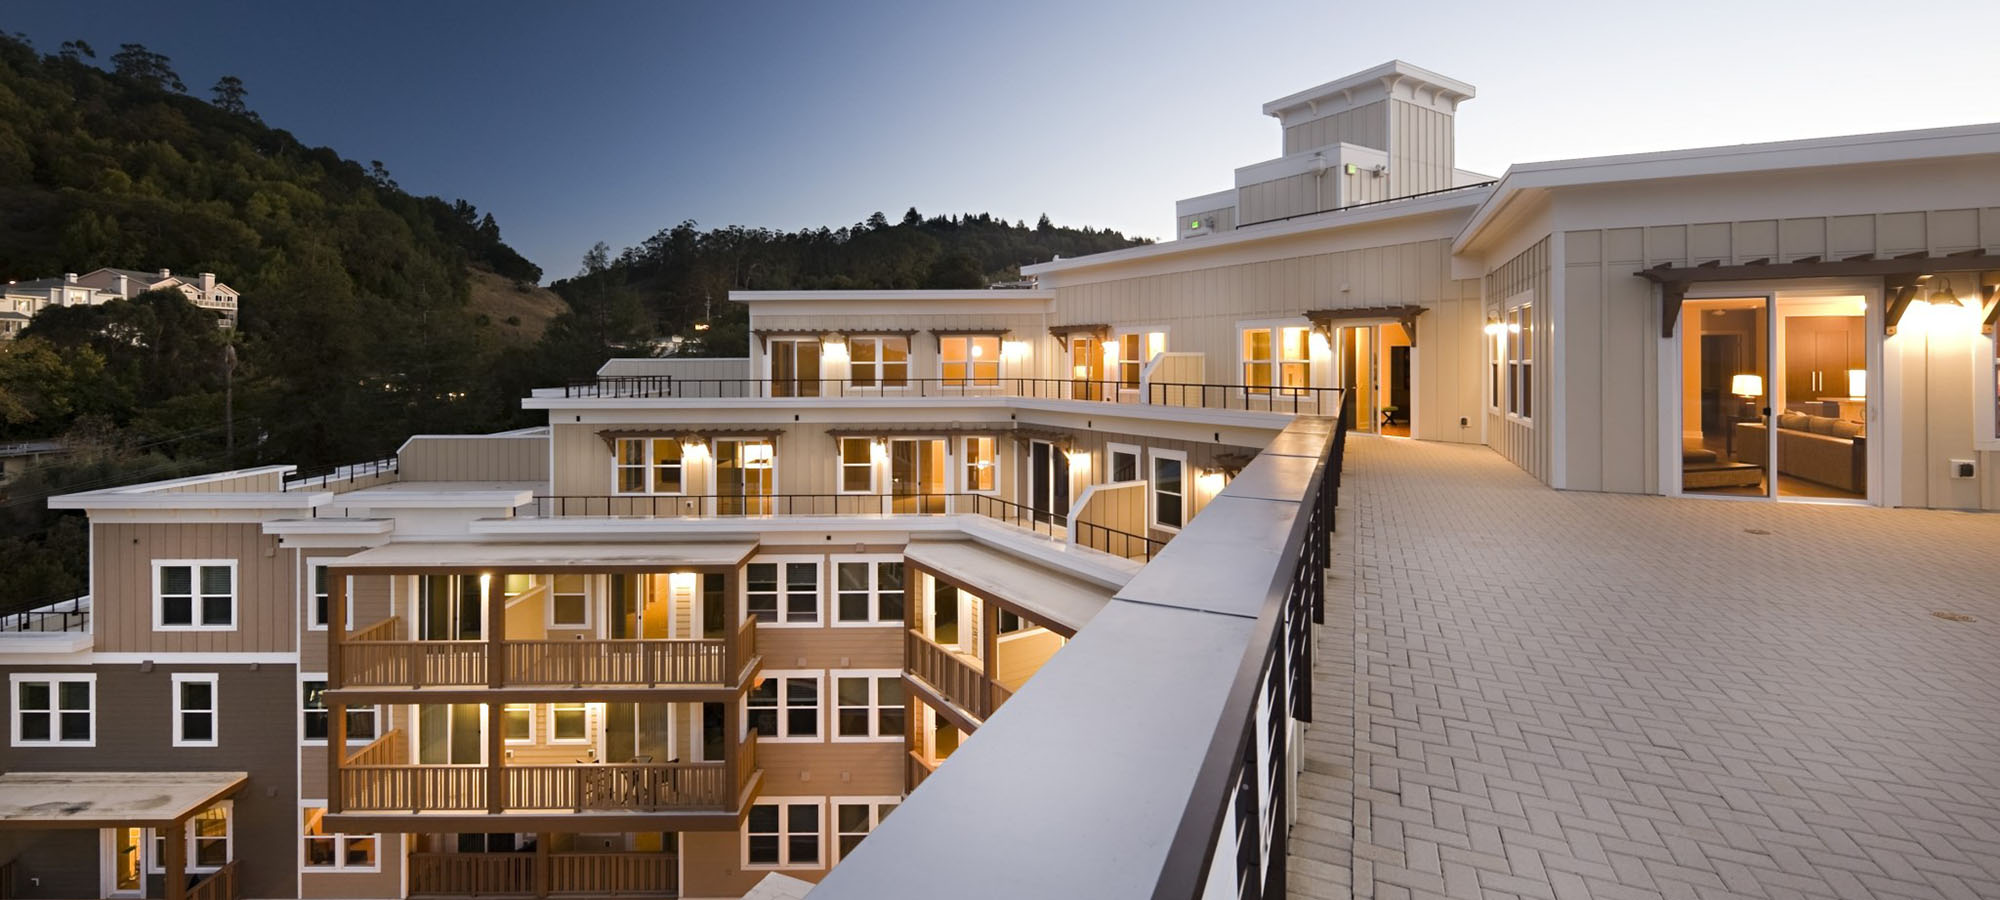 Learn more about our luxury apartments in San Rafael, CA.